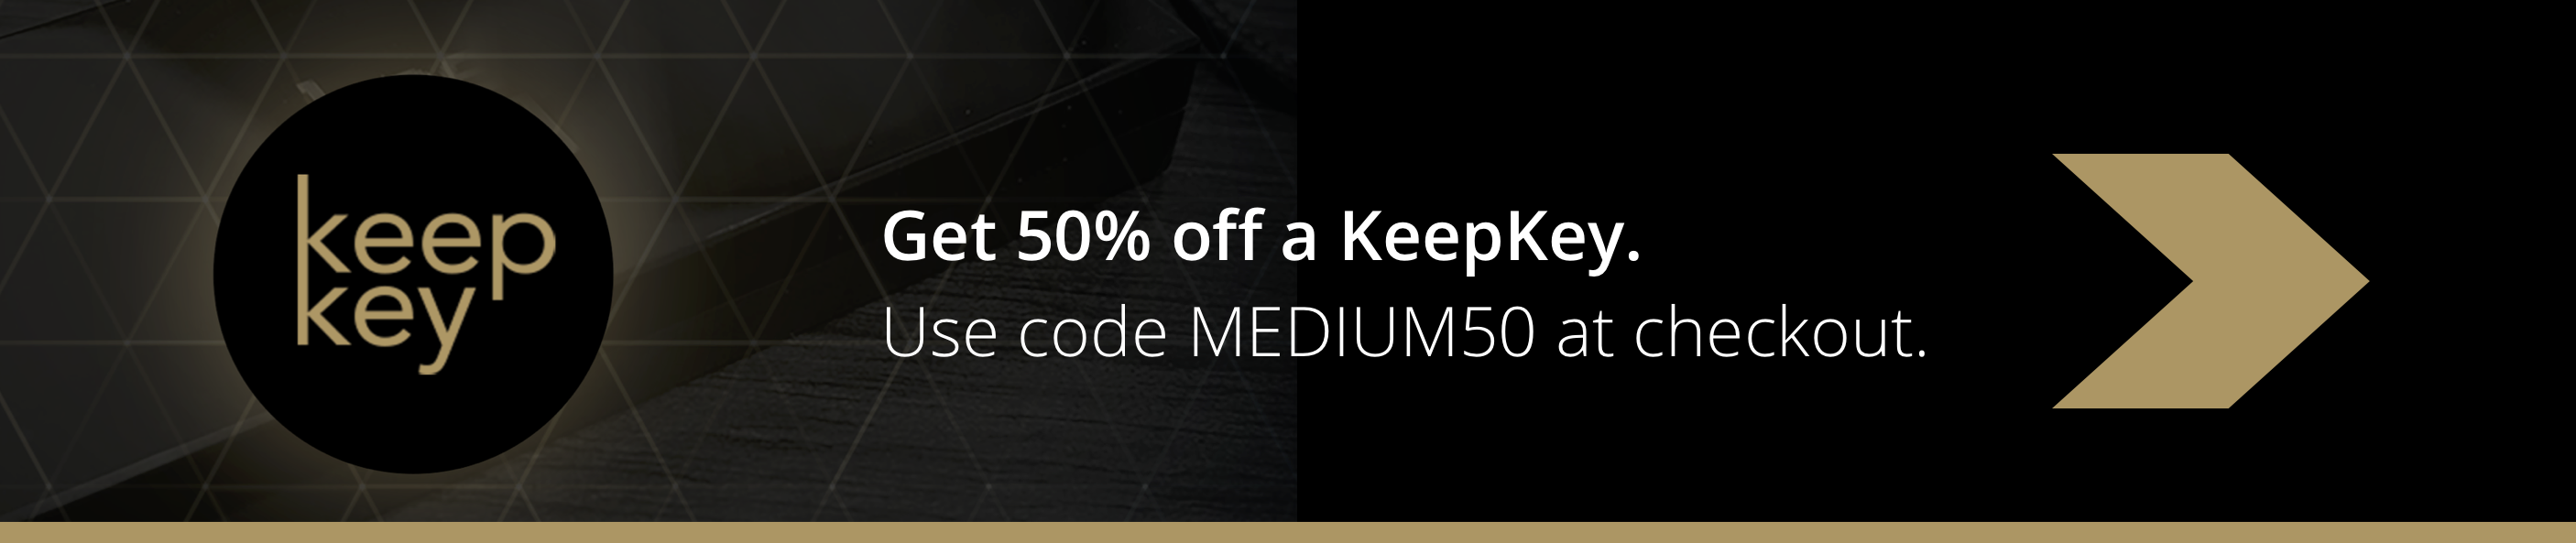 Get 50% off a KeepKey crypto hardware wallet.